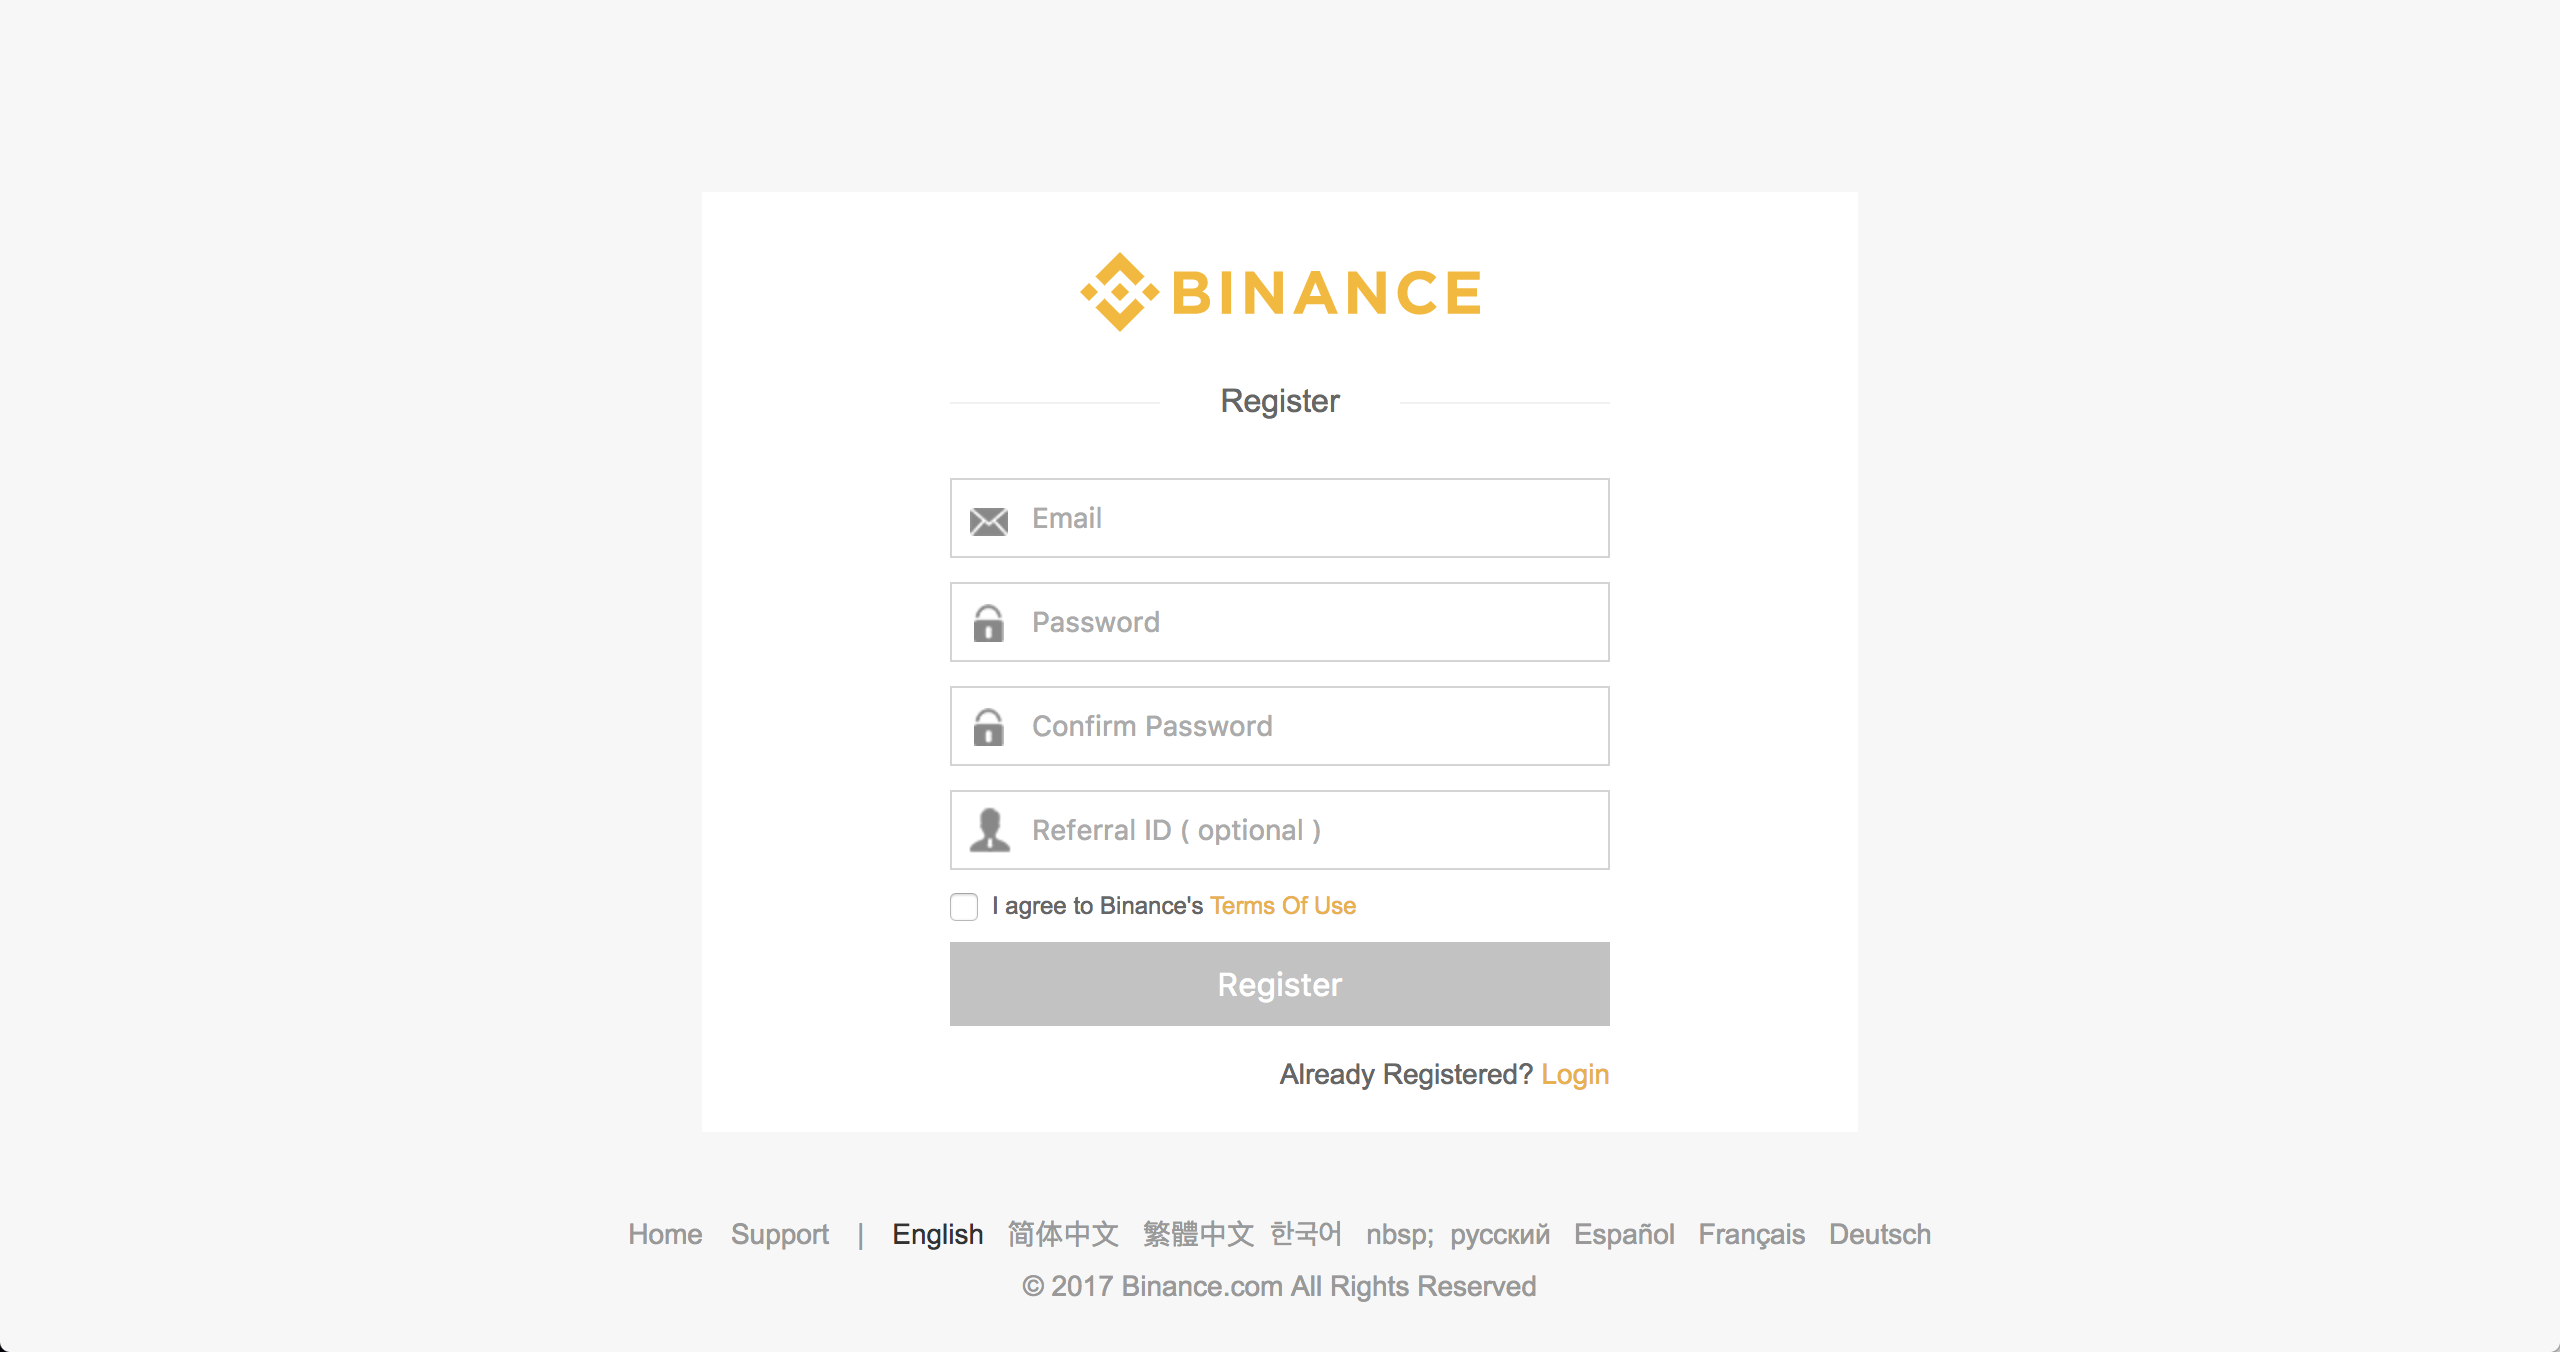 binance-register-page